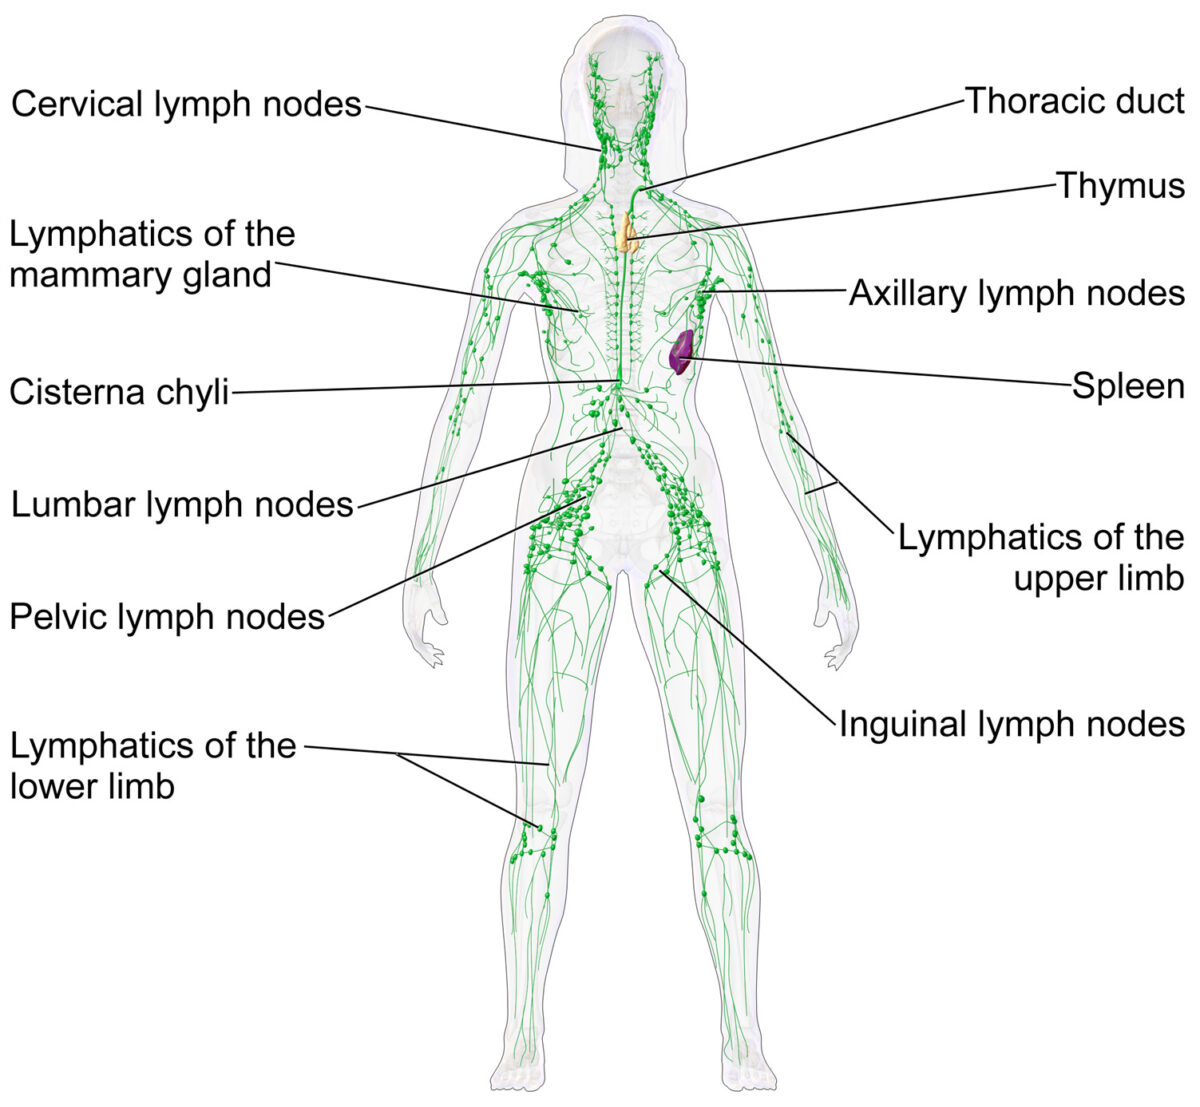 Lymph nodes and the lymphatic system